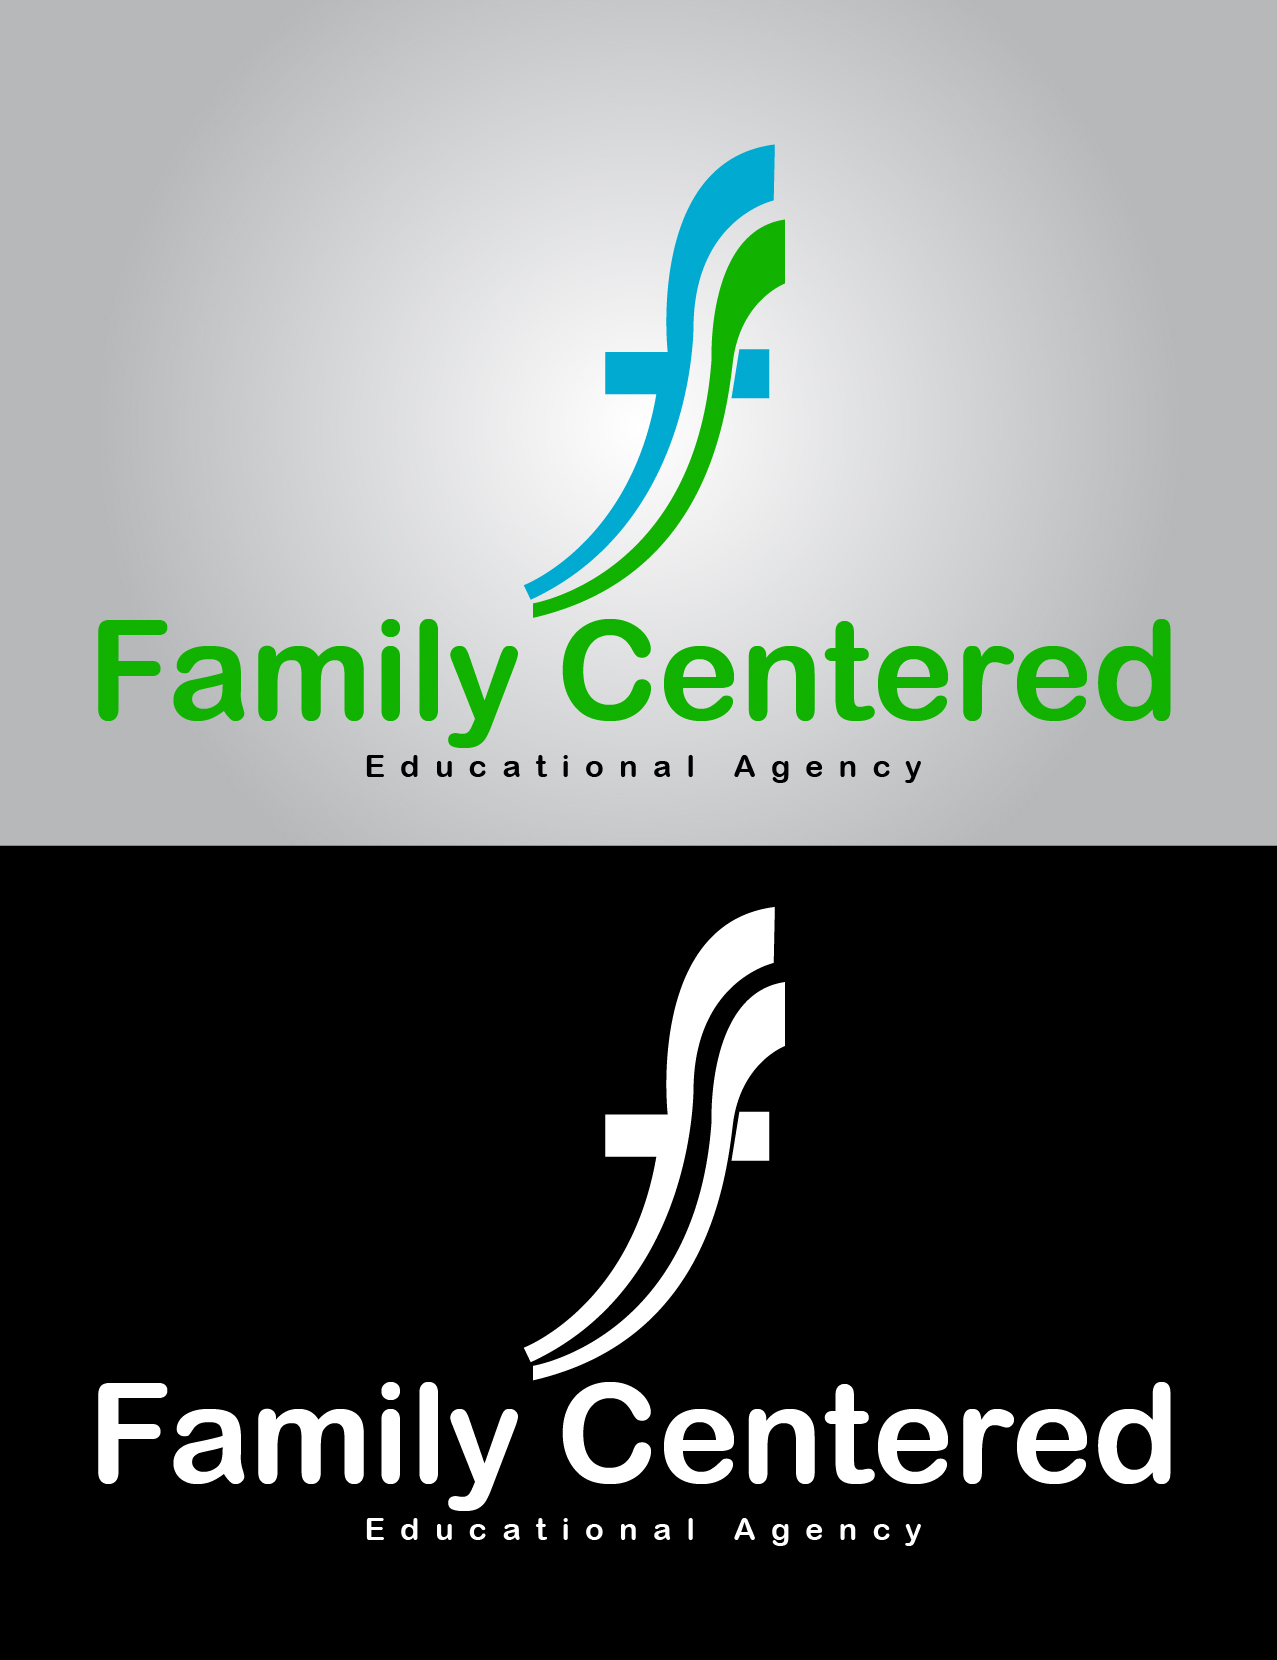 Logo Design by mediaproductionart - Entry No. 28 in the Logo Design Contest Captivating Logo Design for Family Centered Educational Agency.